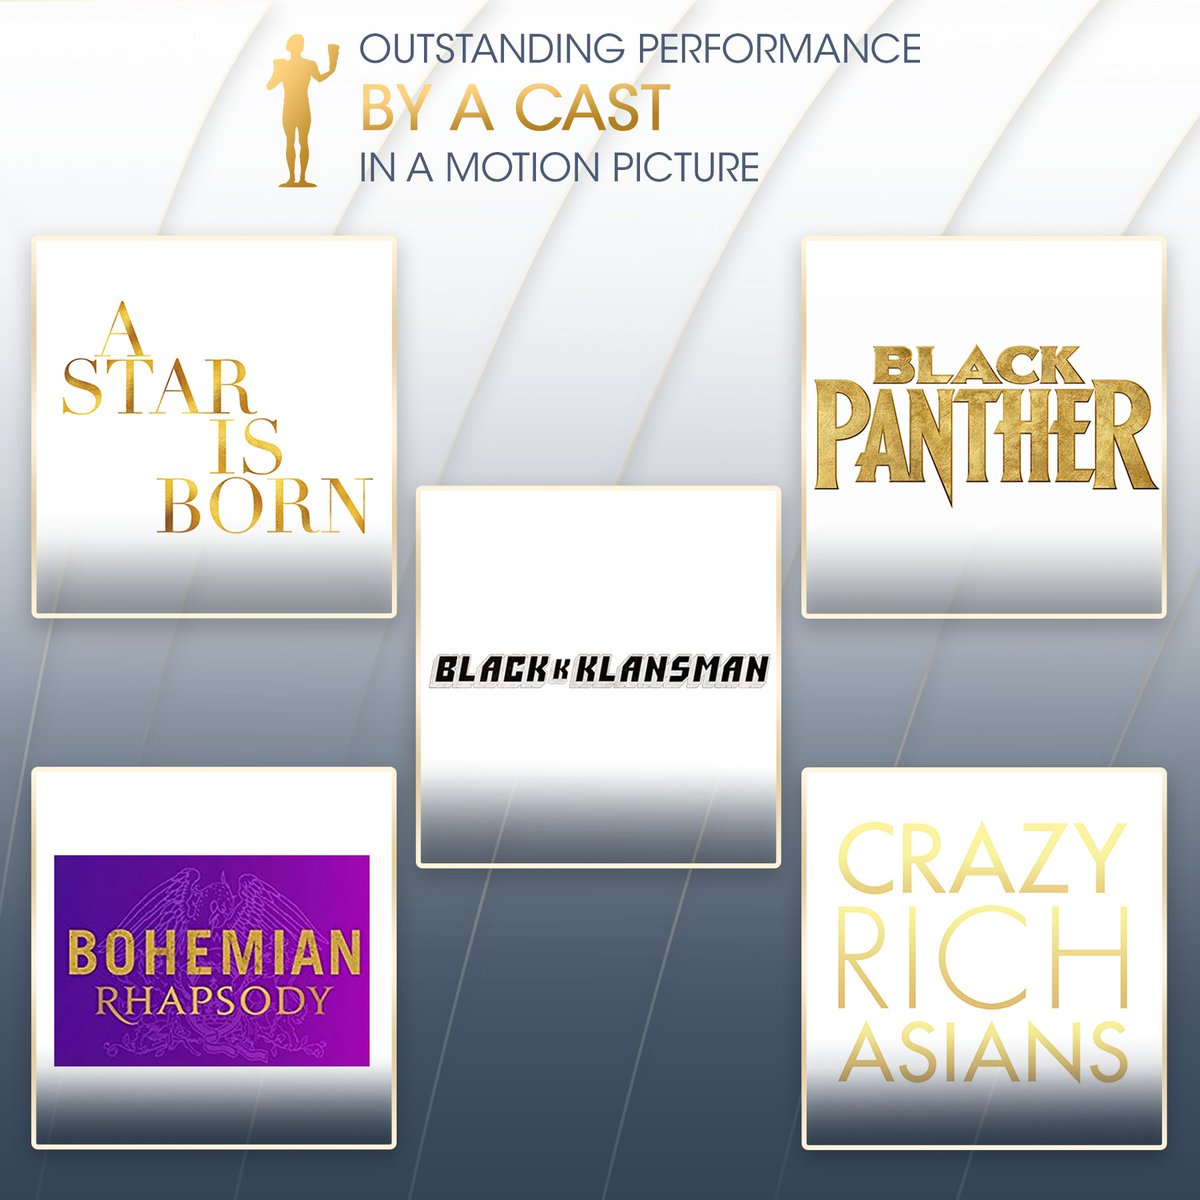 We still can't get over how remarkable and groundbreaking these performances were! Congratulations to @StarisBornMovie, @TheBlackPanther, @Blackkklansman, @BoRhapMovie, and @CrazyRichMovie for your Cast in a Motion Picture nominations! #sagawards<br>http://pic.twitter.com/TG1HadpDBe